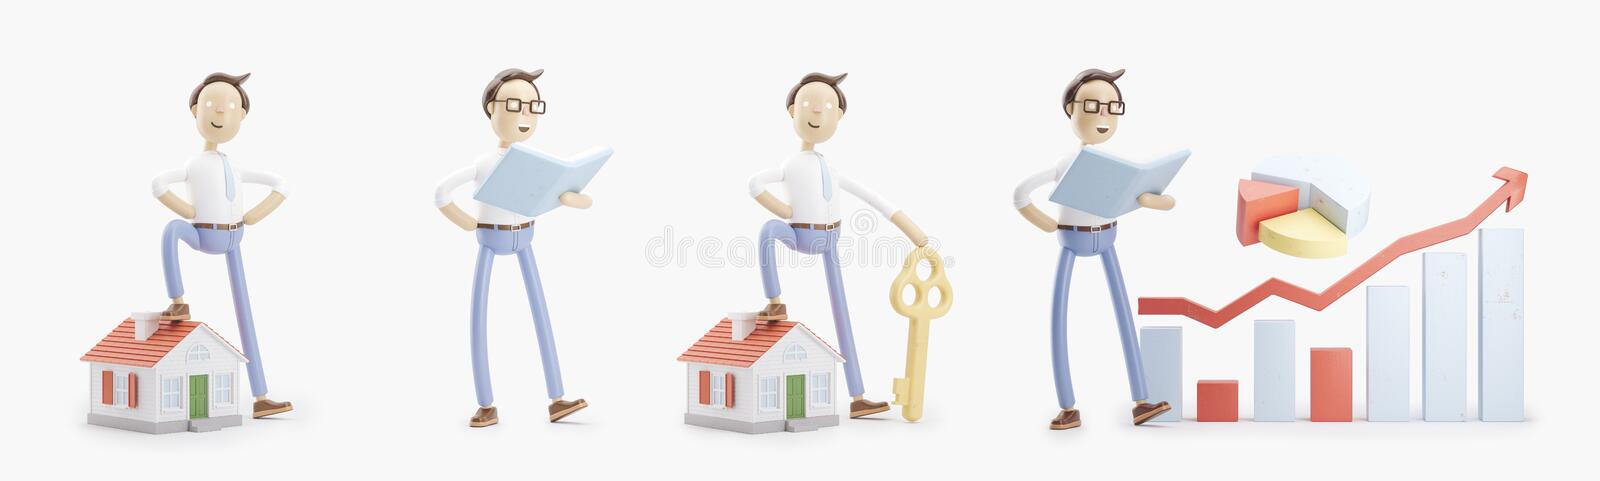 Cartoon character stands with a book, small house, key and infographics. set of 3d illustrations royalty free illustration